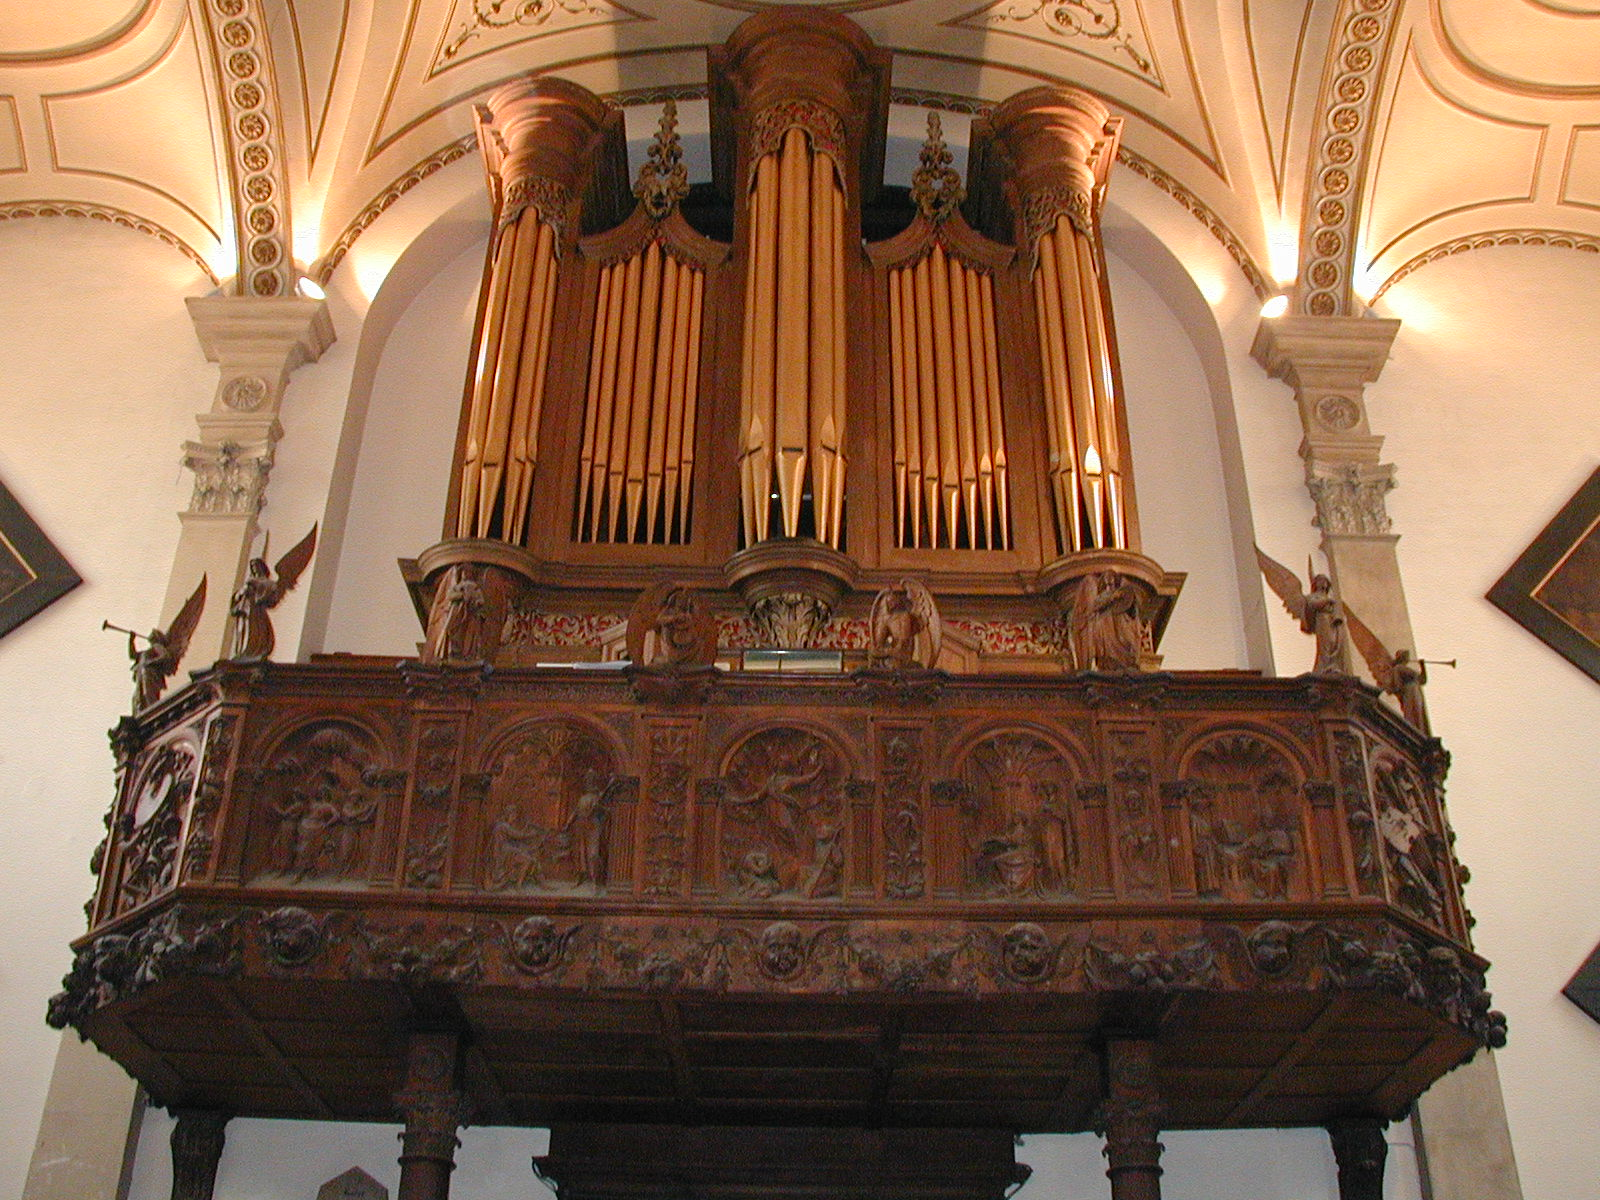 Organ-view from center church looking up (orange)